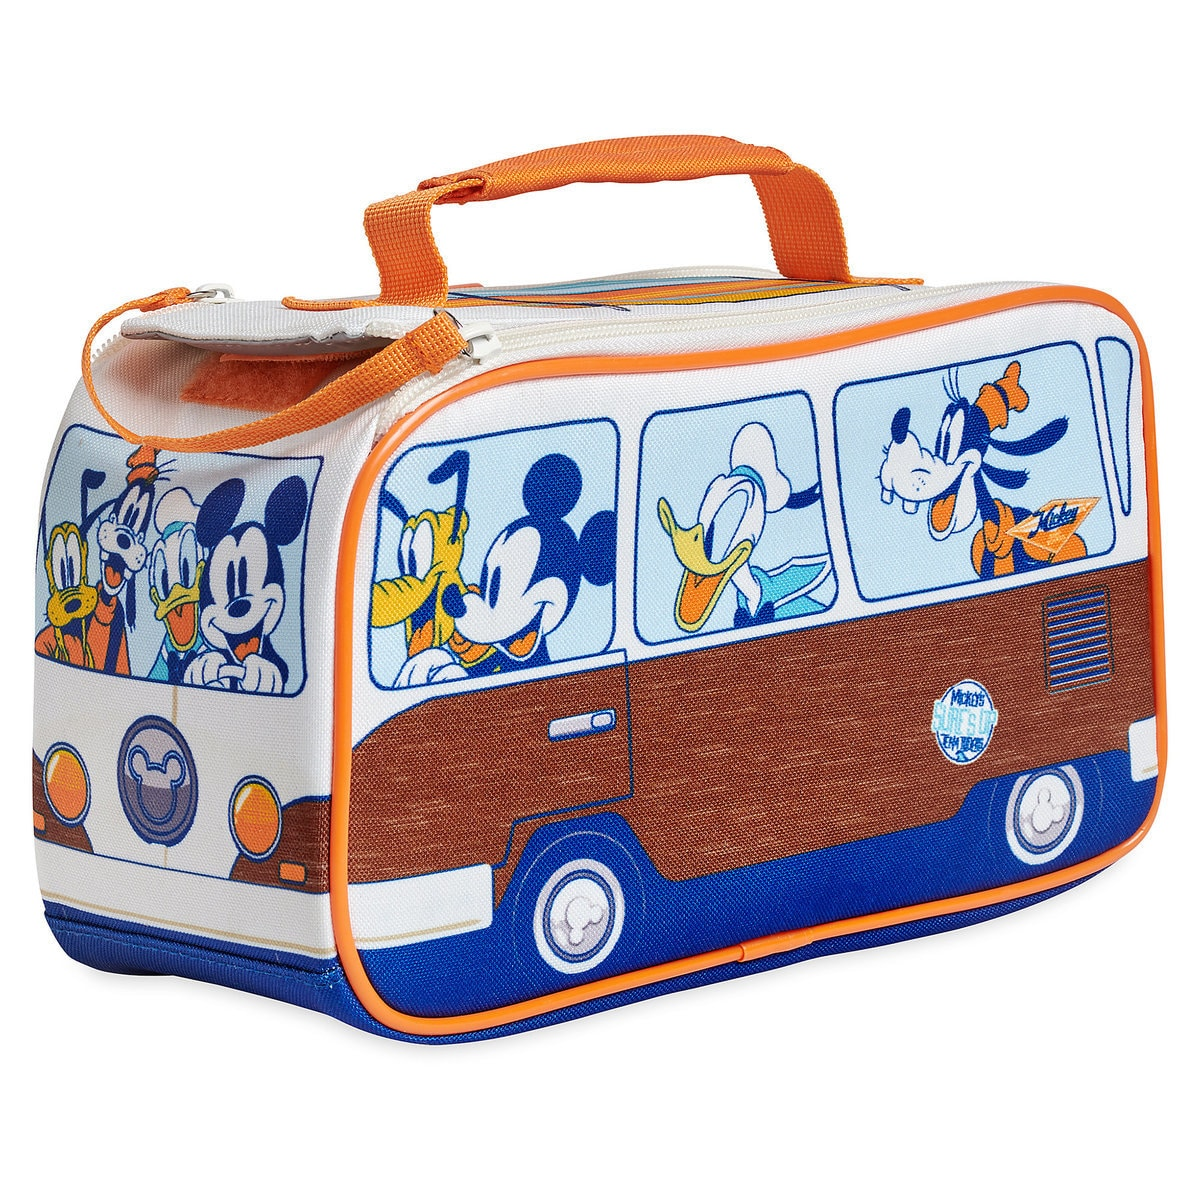 320bb5ba8d9 Product Image of Mickey Mouse and Friends Lunch Tote   1